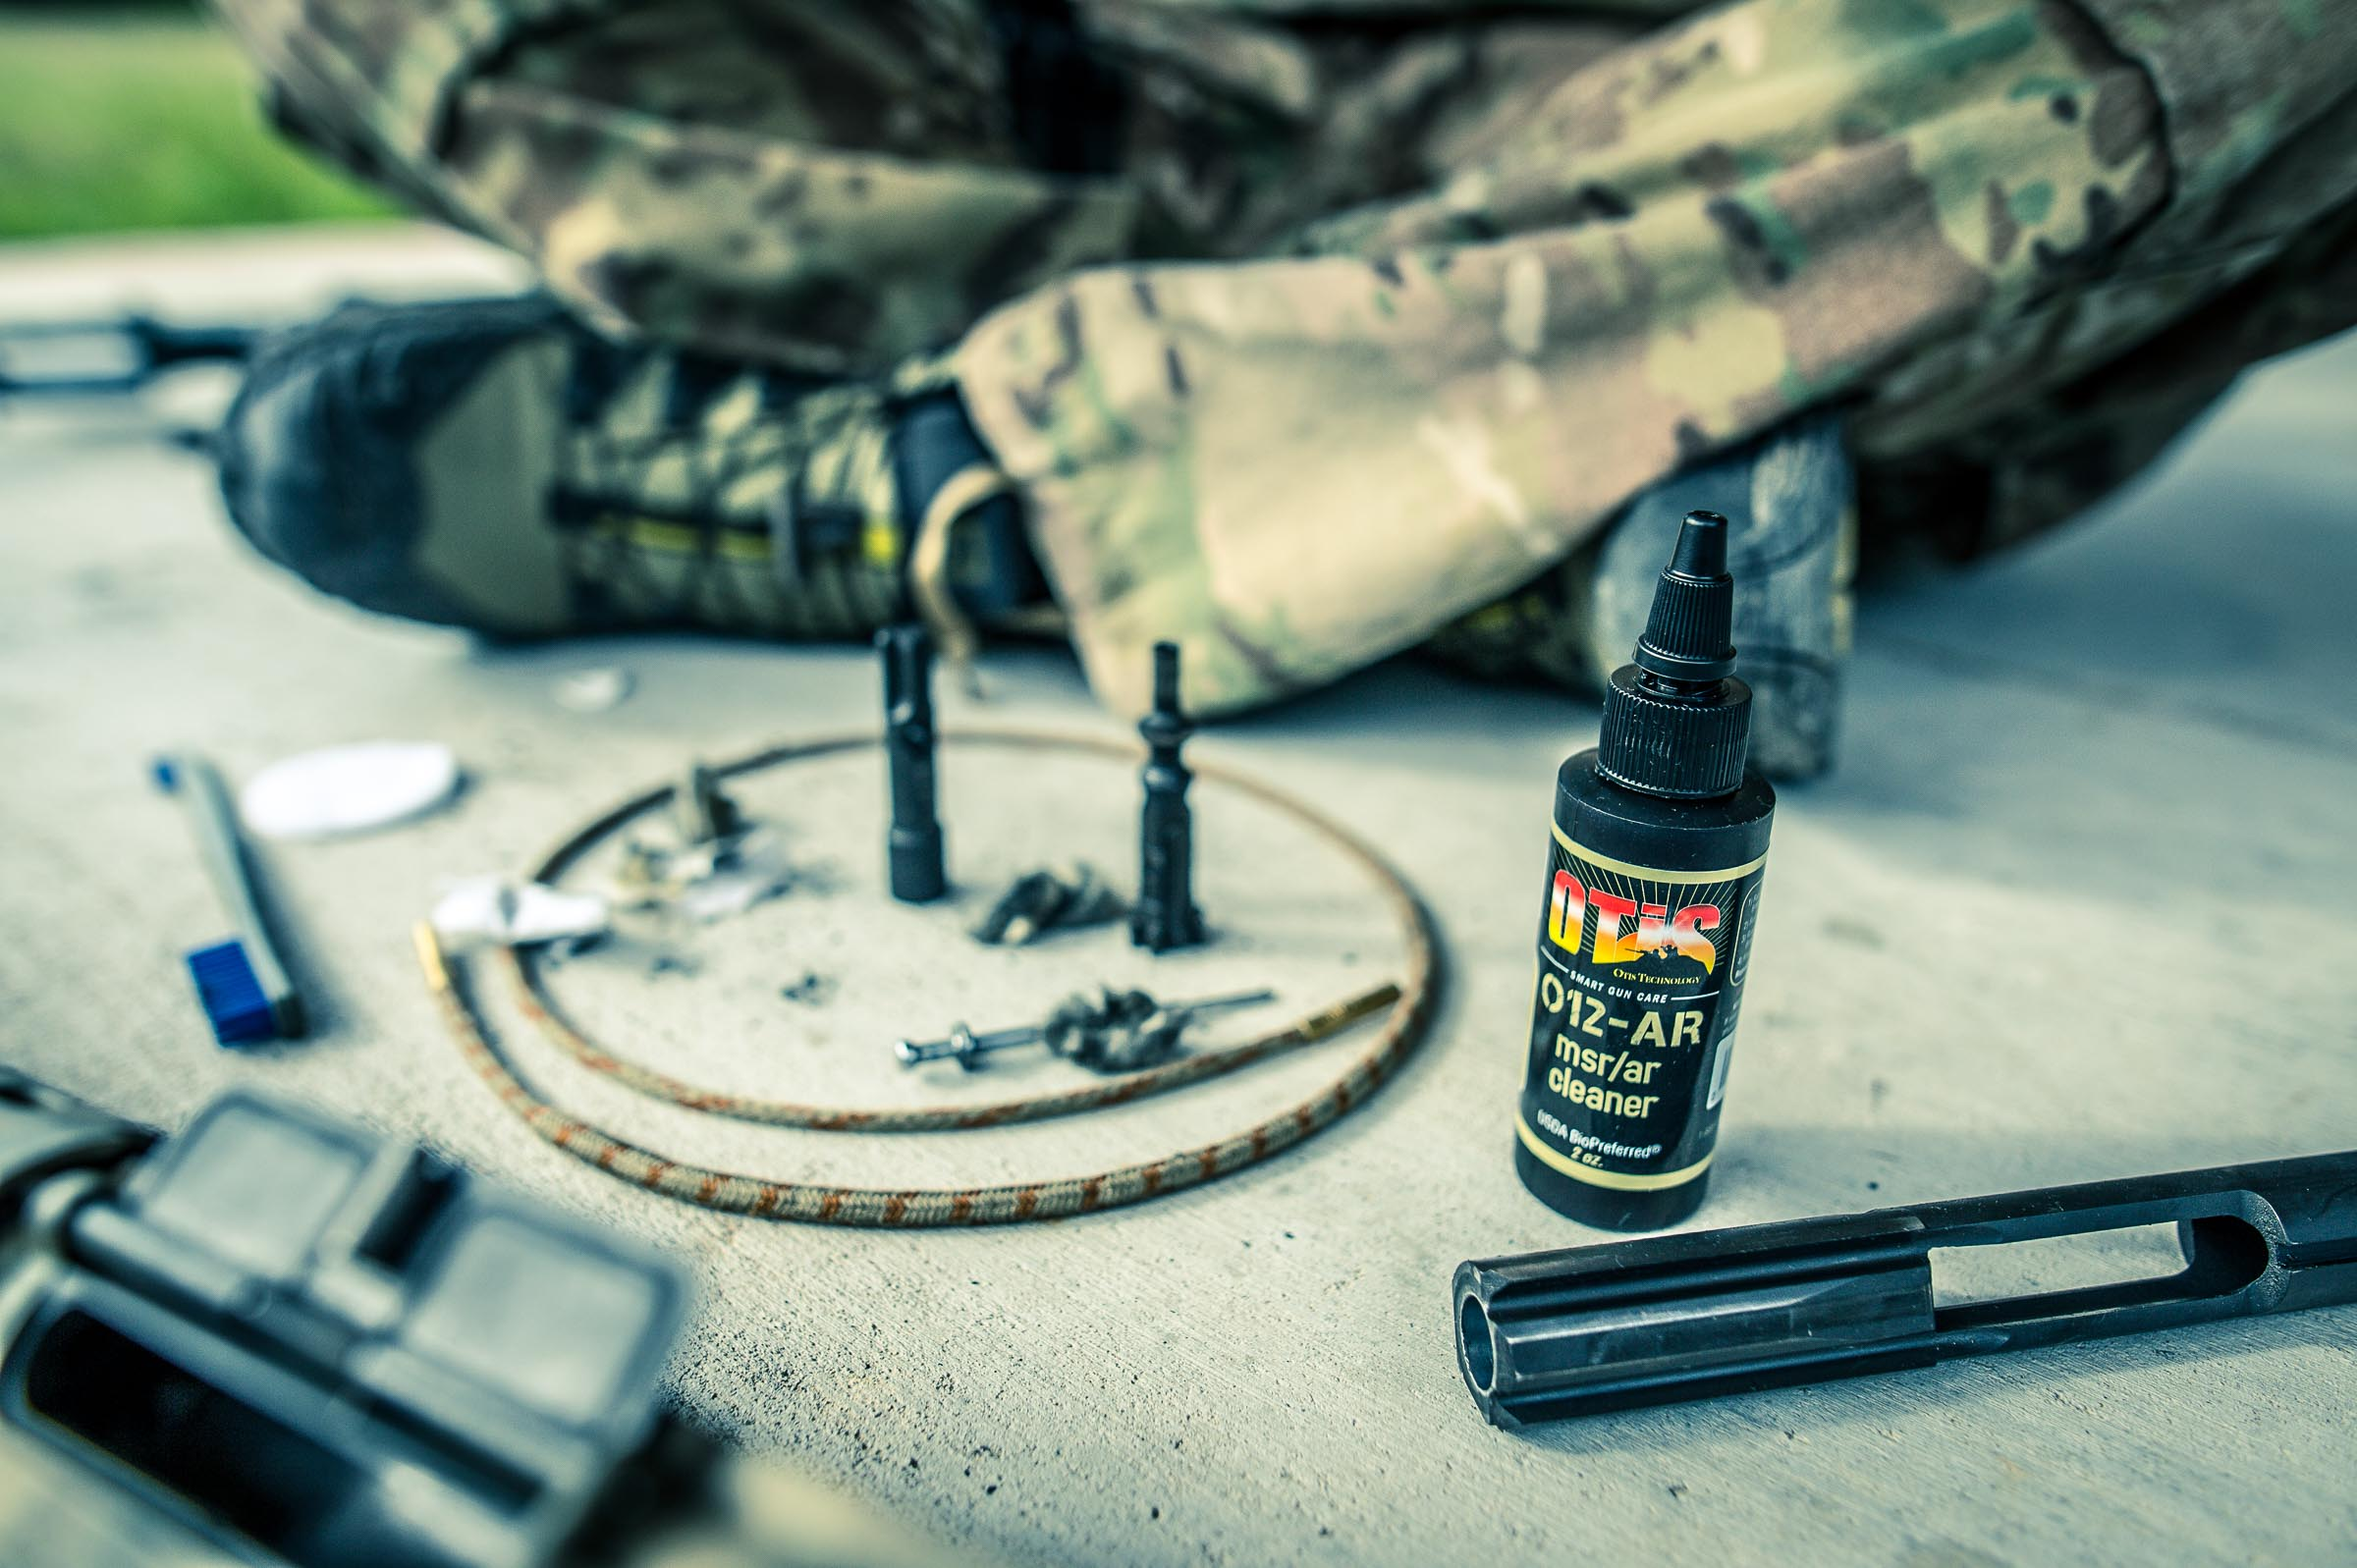 Gun cleaning with Otis AR cleaner. © Tony Bynum